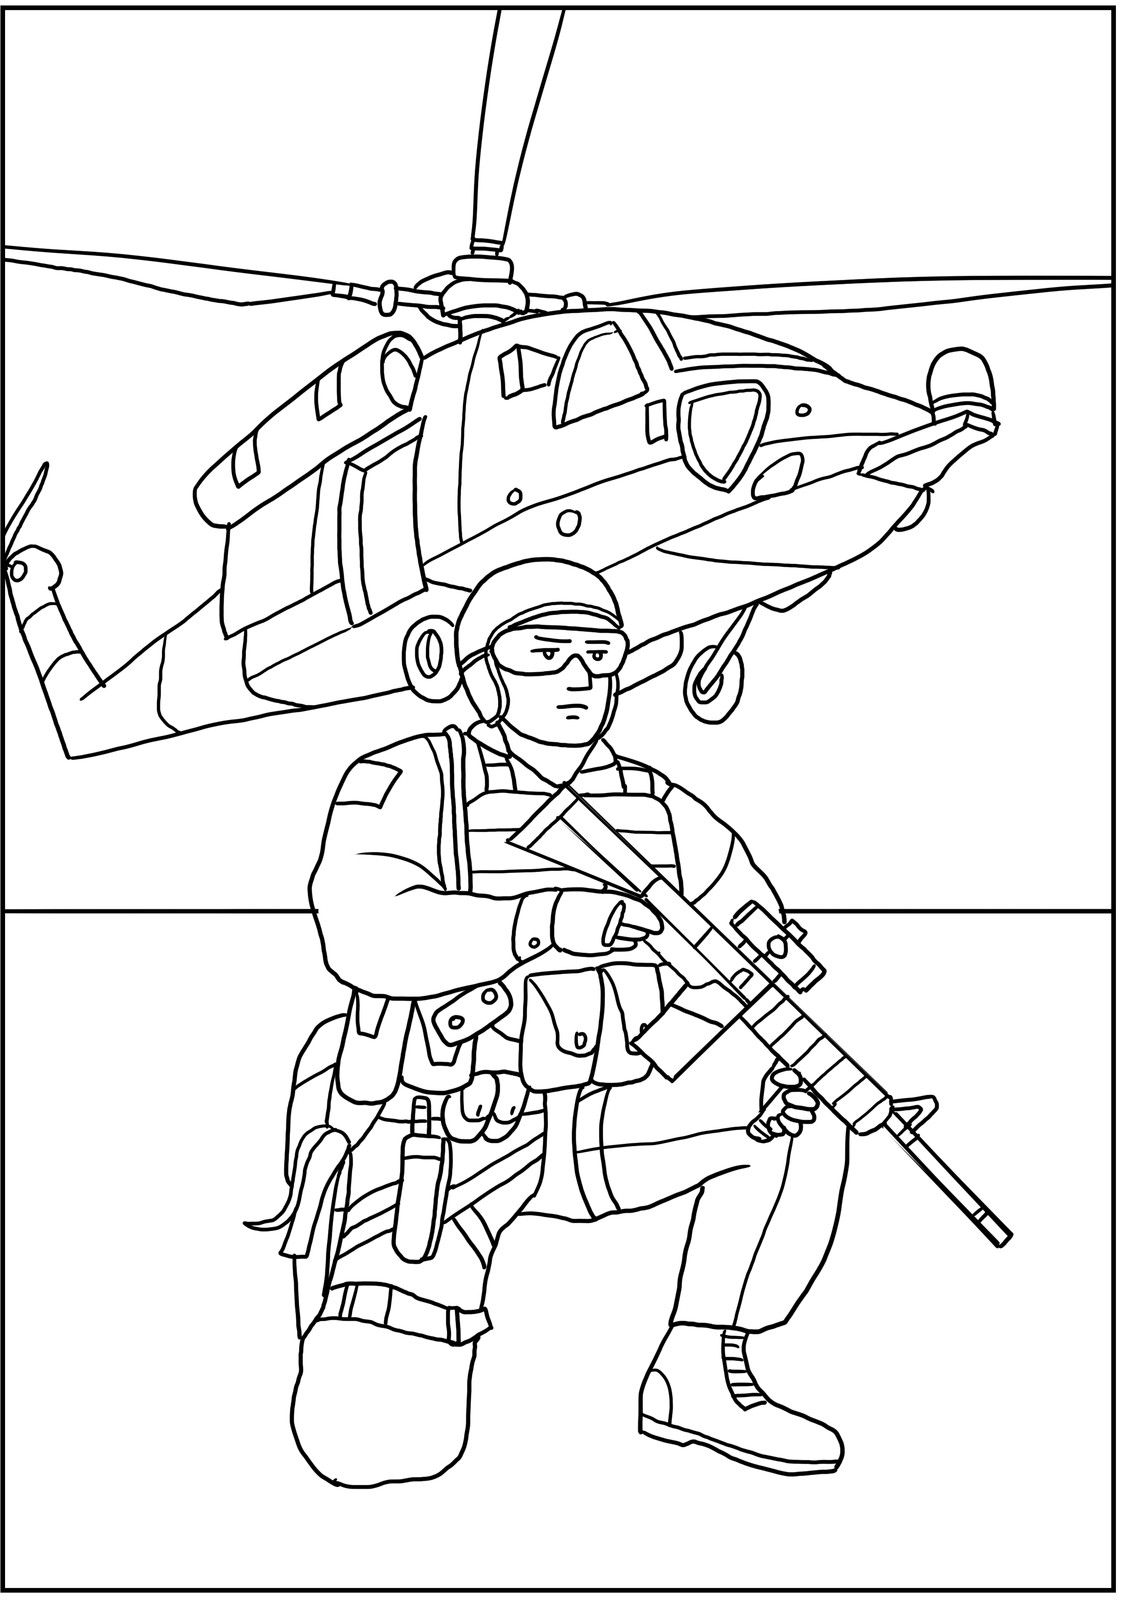 Navy Seals Military Coloring For Kids Soldier Drawing Army Drawing Military Drawings